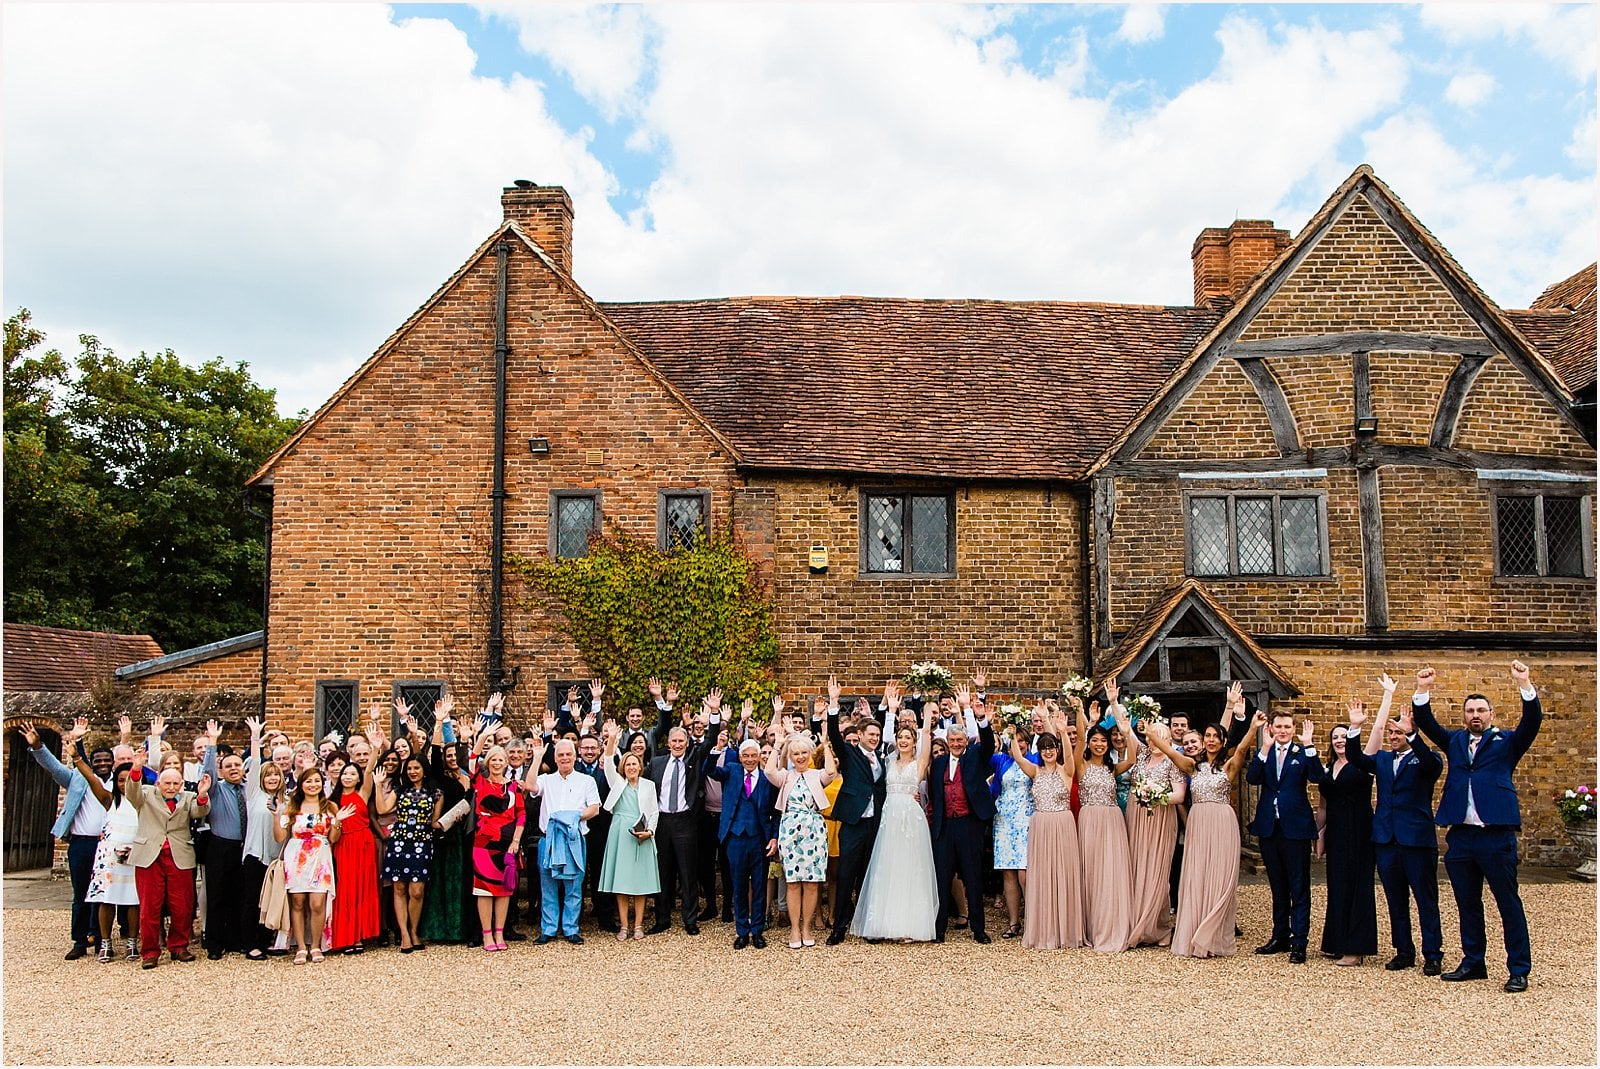 Beautiful Lillibrooke Manor Wedding - Ksenia & Iain 27